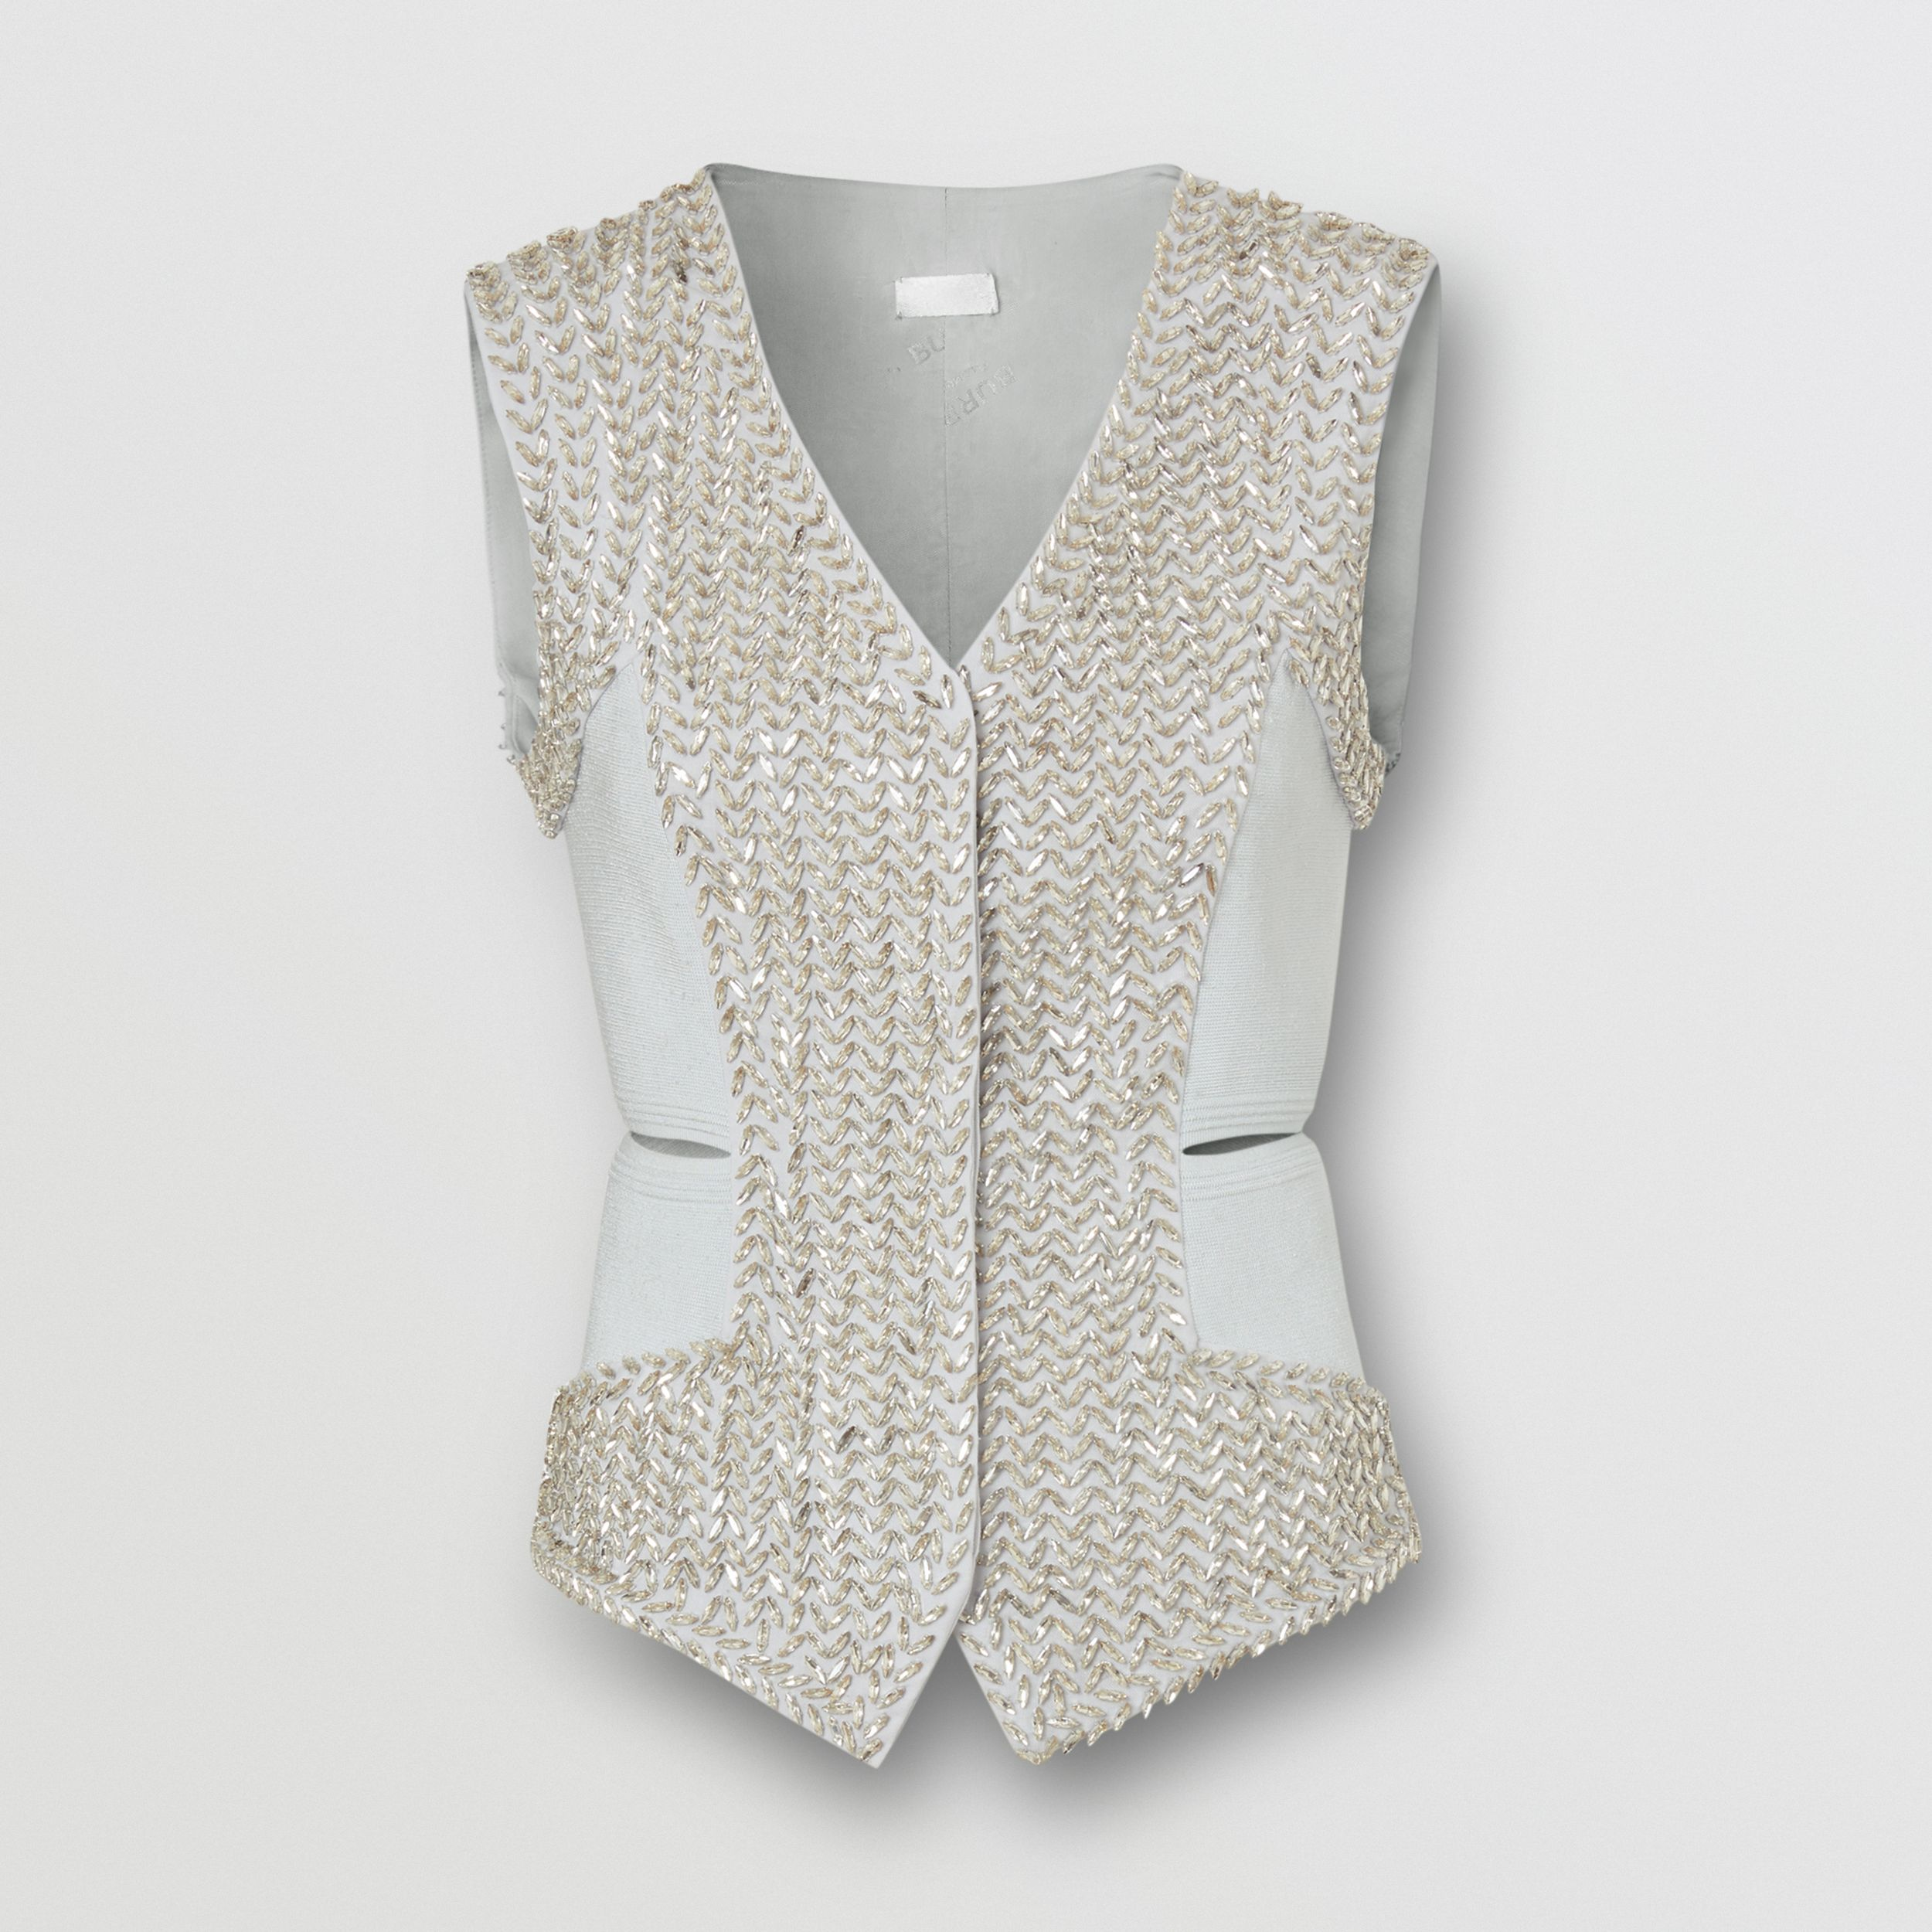 Crystal Embroidered Mohair Wool Cut-out Waistcoat in Light Pebble Grey - Women | Burberry - 4